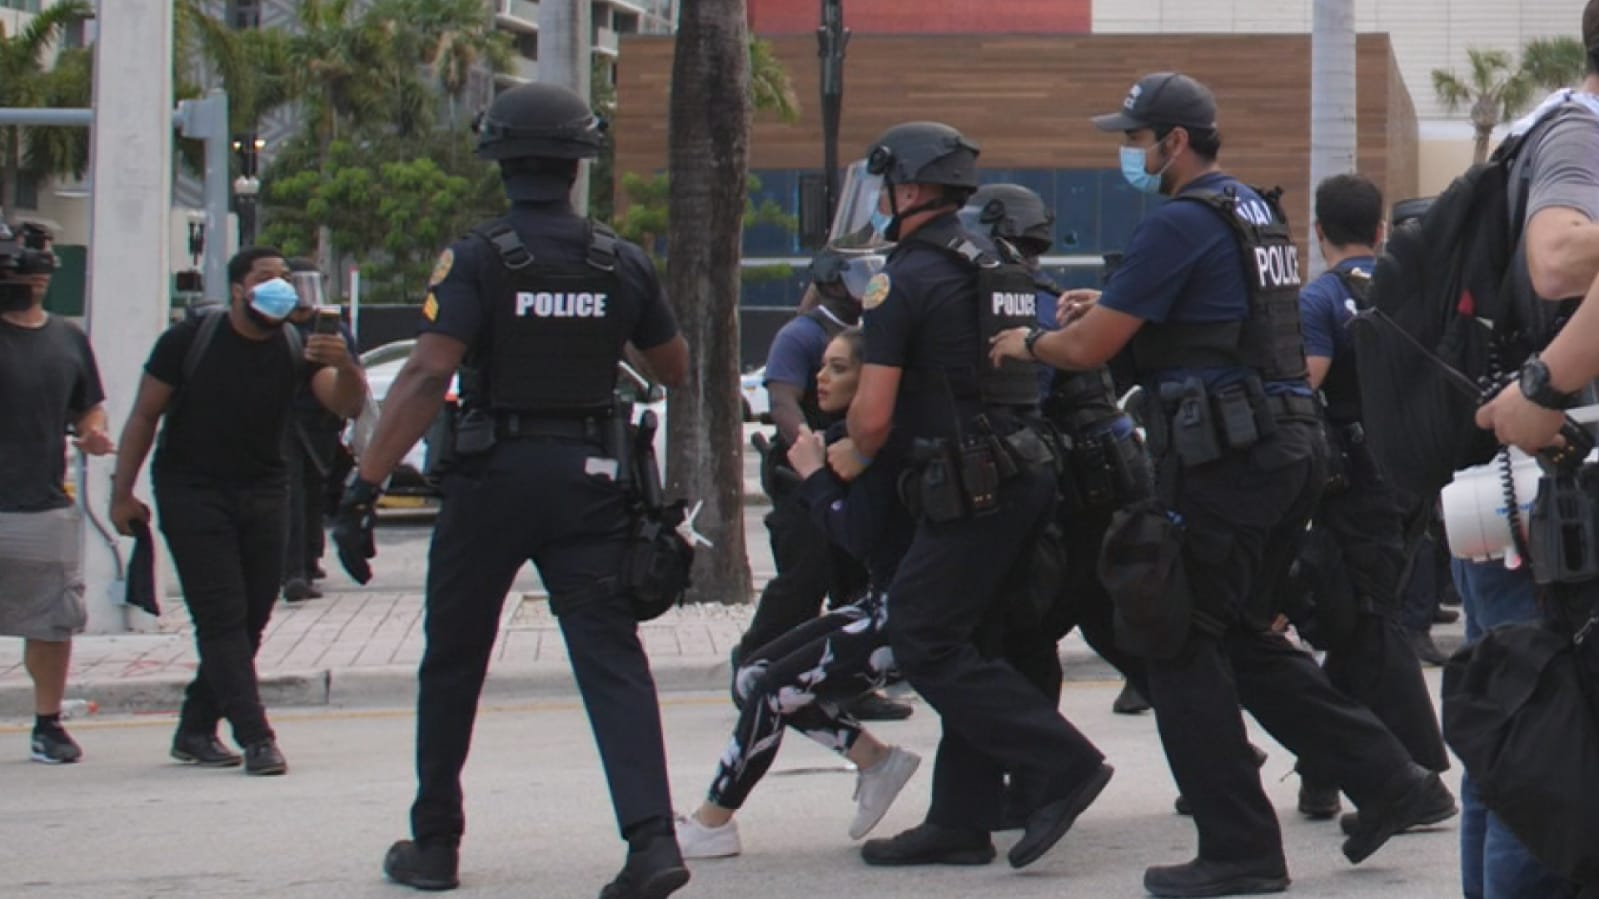 Alaa Massri, 18, being arrested during a protest in Miami on 10 June (CAIR-Florida)